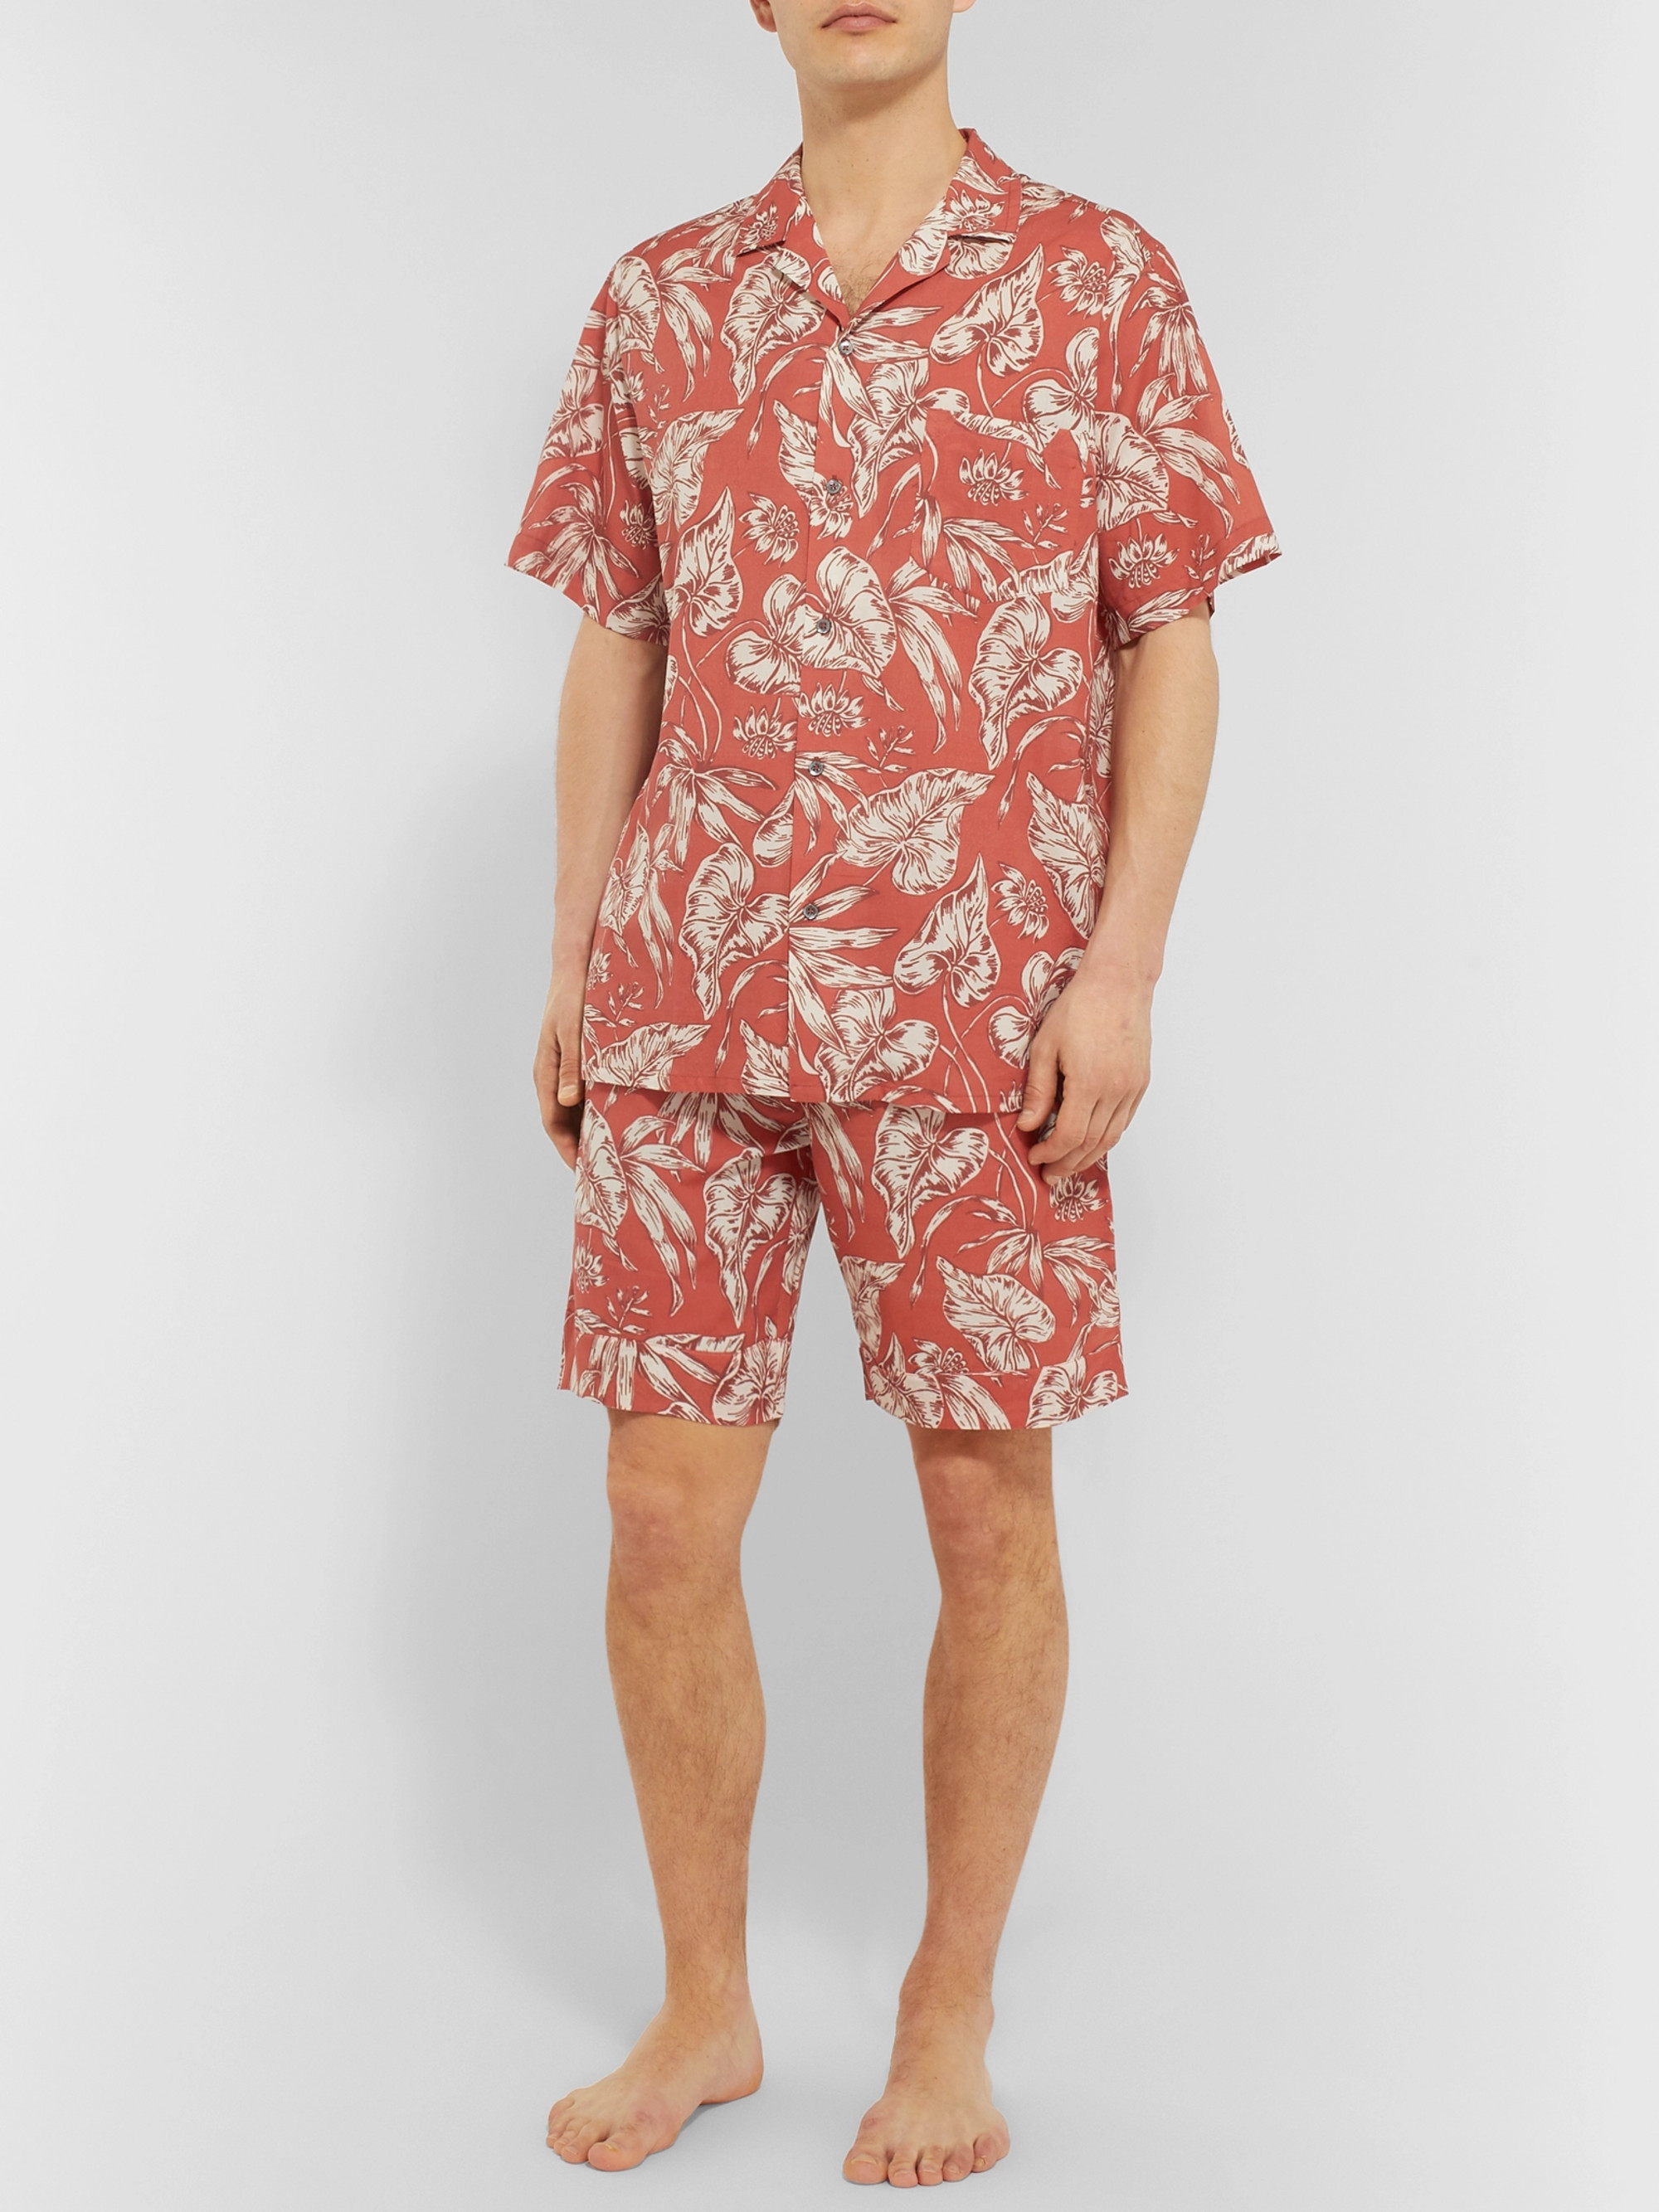 Desmond & Dempsey Cuban Printed Cotton Pyjama Shirt